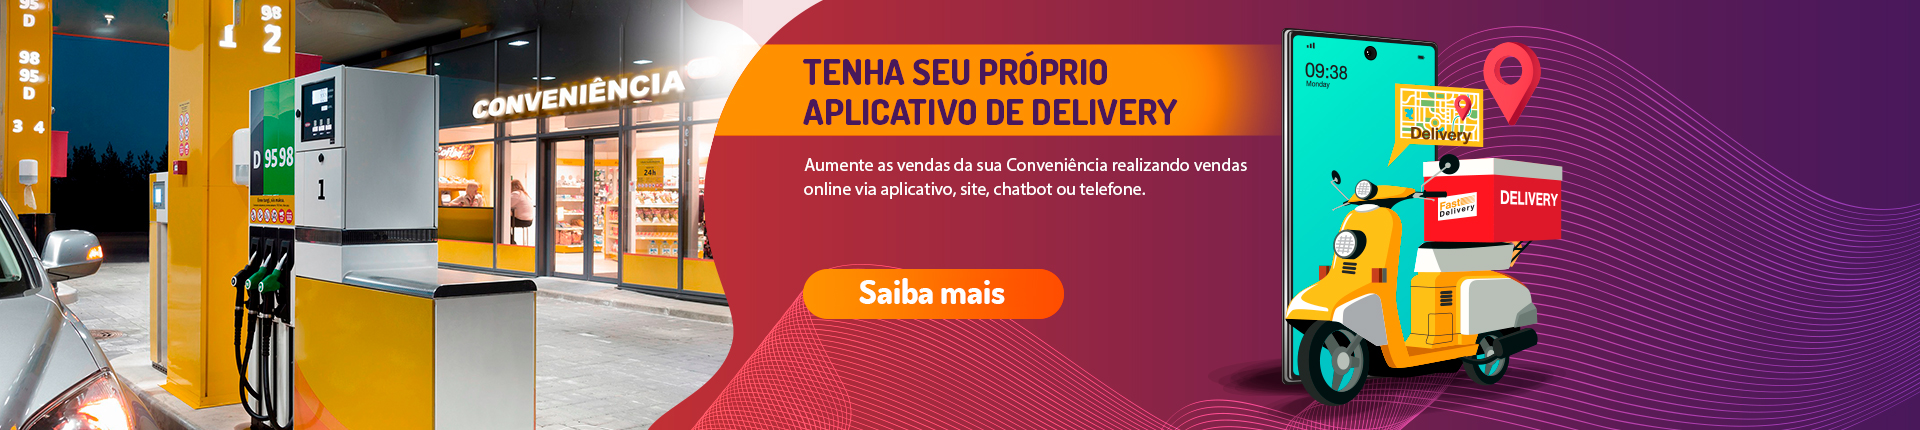 Banner Campanha Delivery App